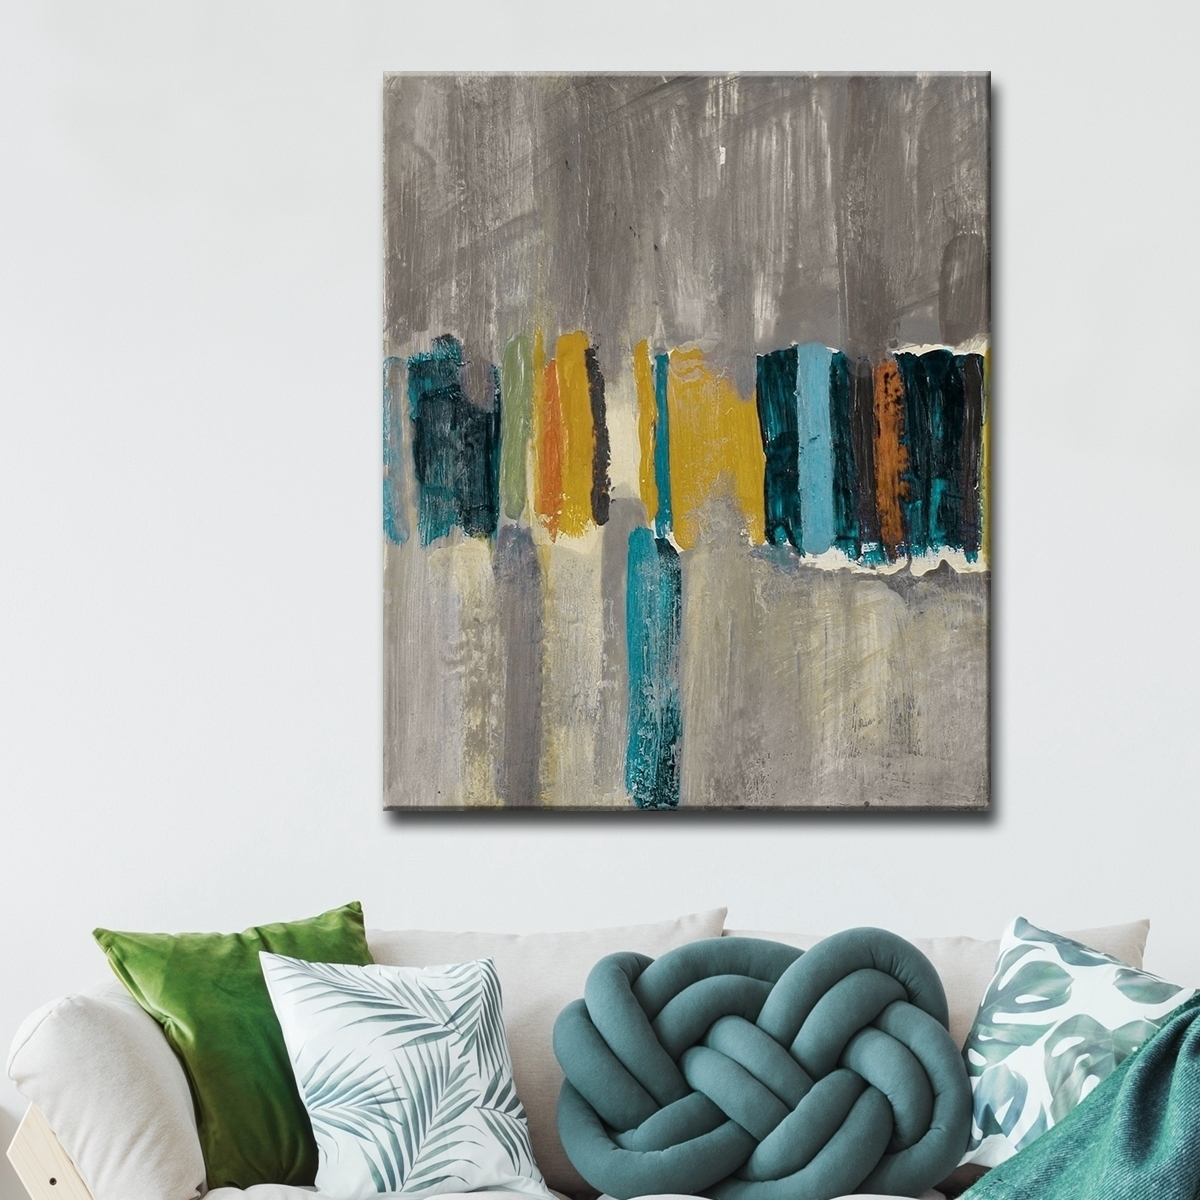 Shop Ready2Hangart 'smash Vii' Oversized Canvas Wall Art – Grey With Regard To Most Recently Released Oversized Teal Canvas Wall Art (View 16 of 20)